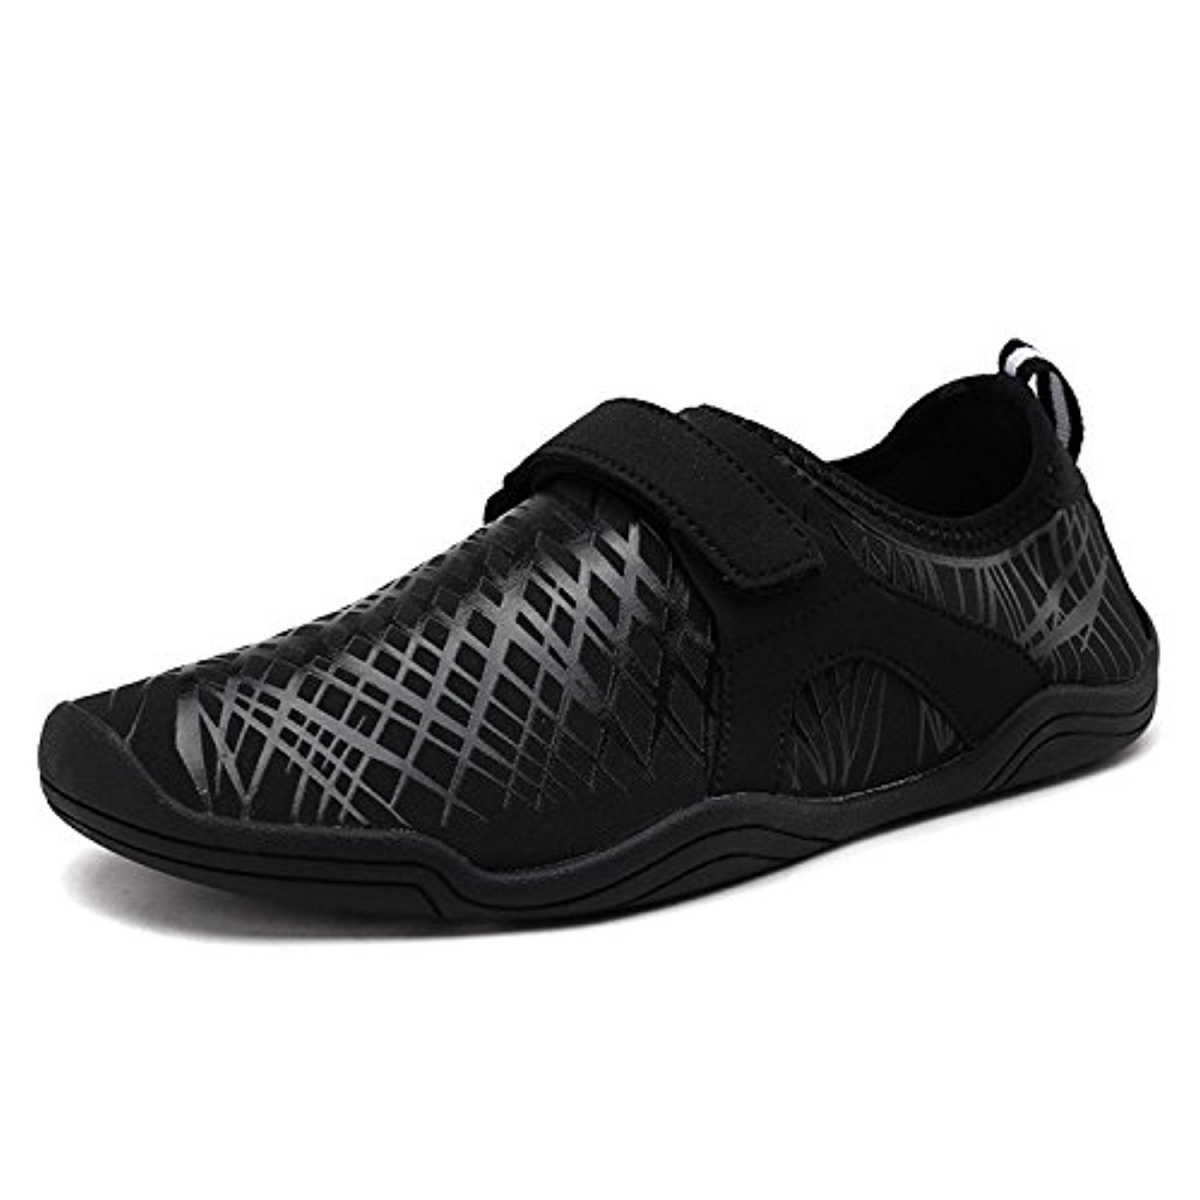 Dream Pairs Men's Water shoes